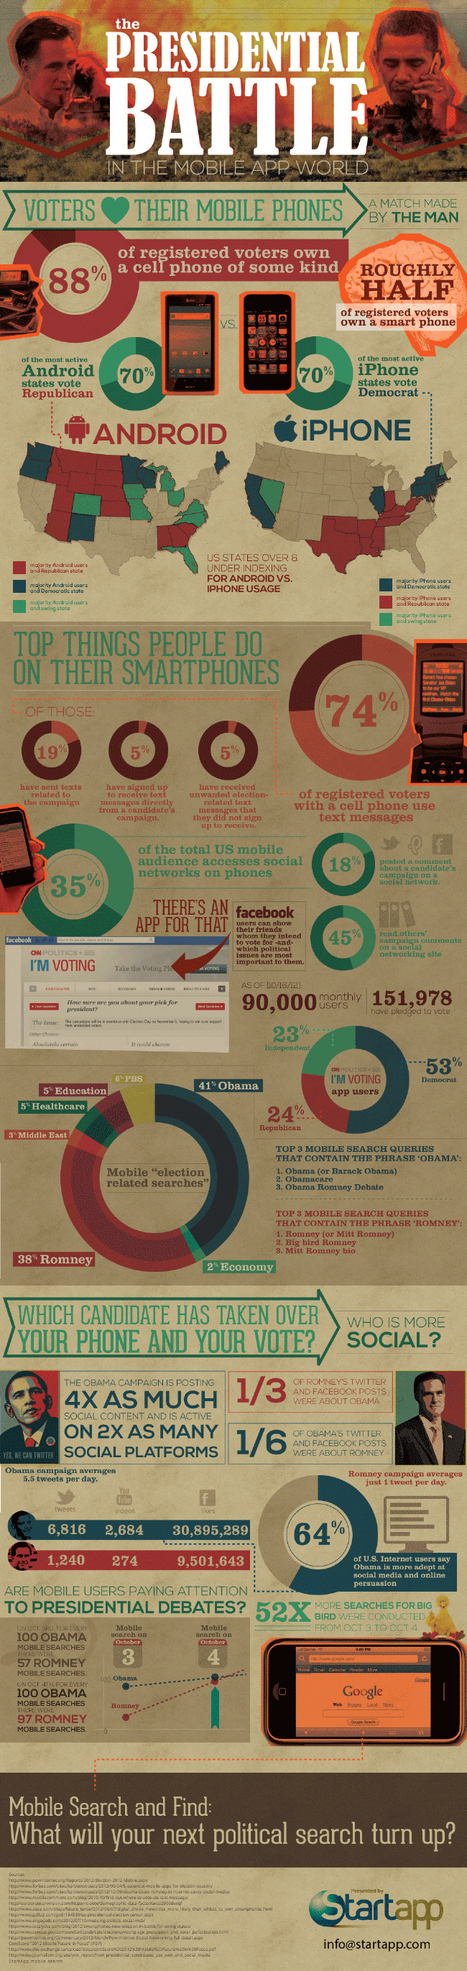 The presidential battle in the mobile app world (infographic) | data visualization | Scoop.it